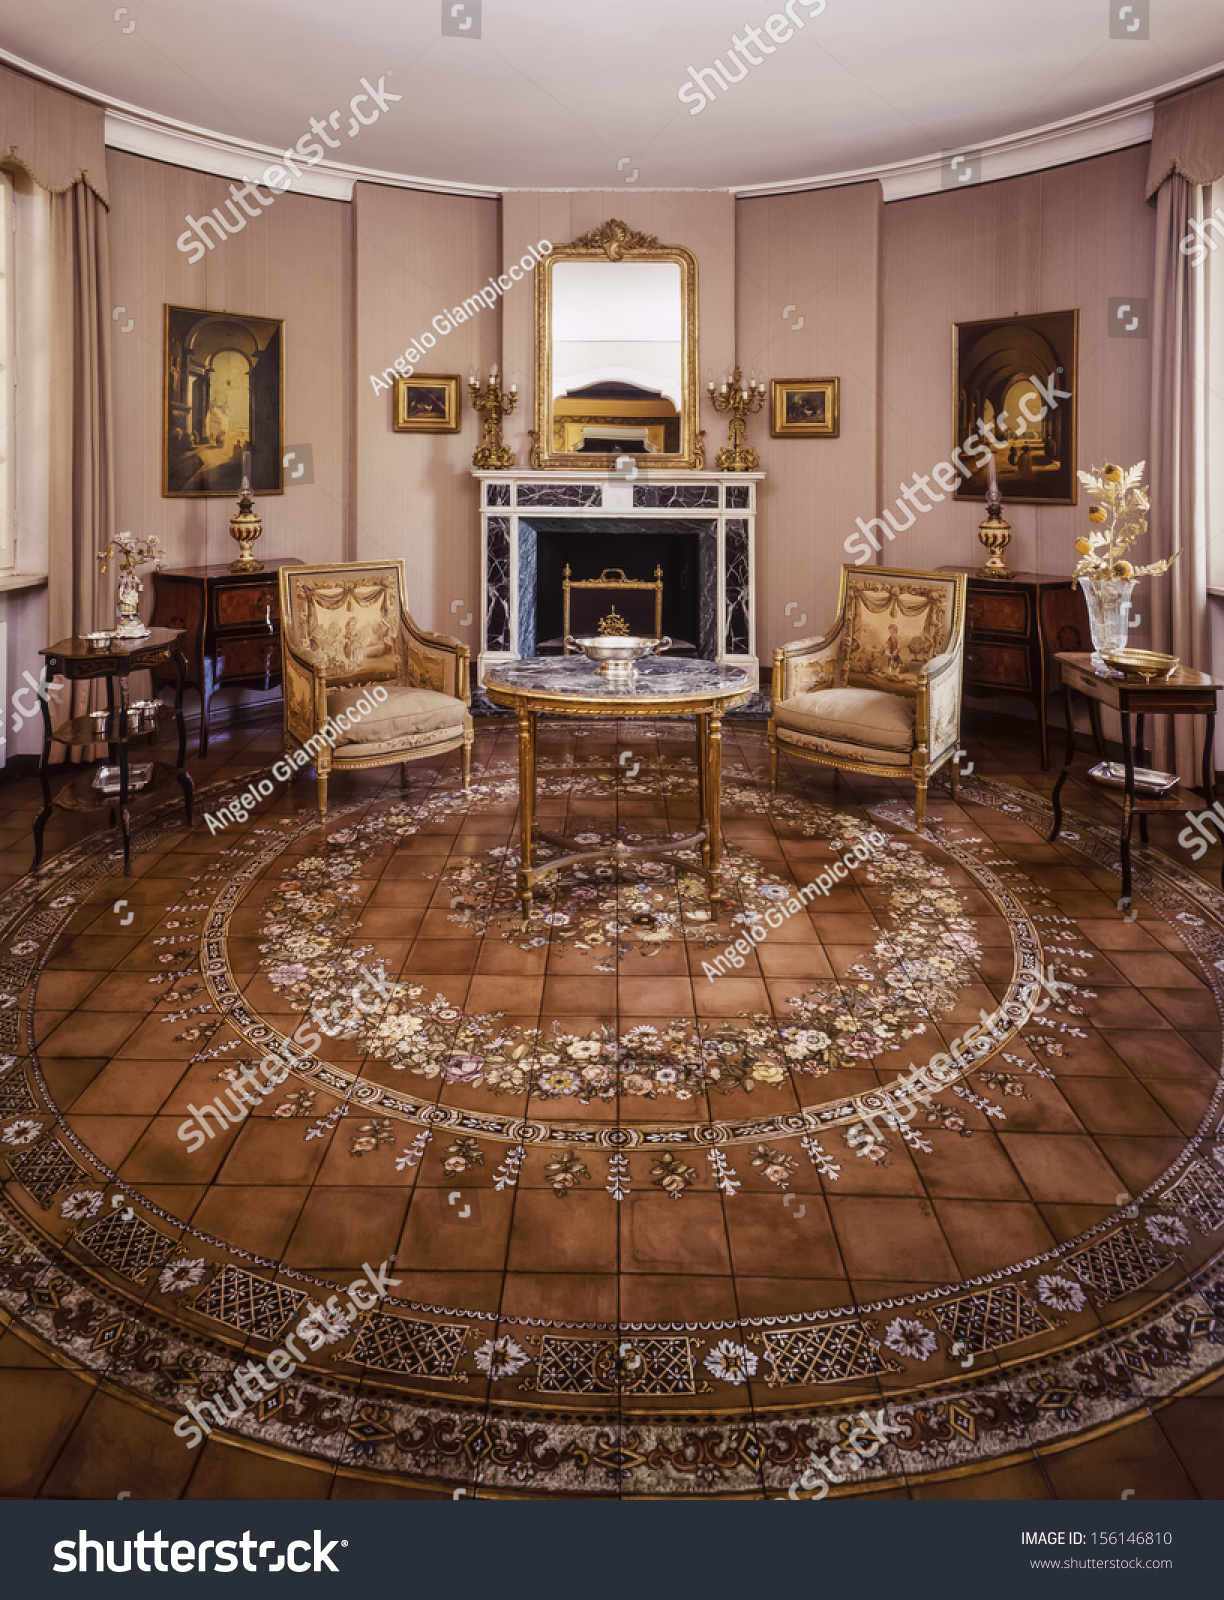 Terracotta Living Room Italy Rome Old Luxury Private House Stock Photo 156146810